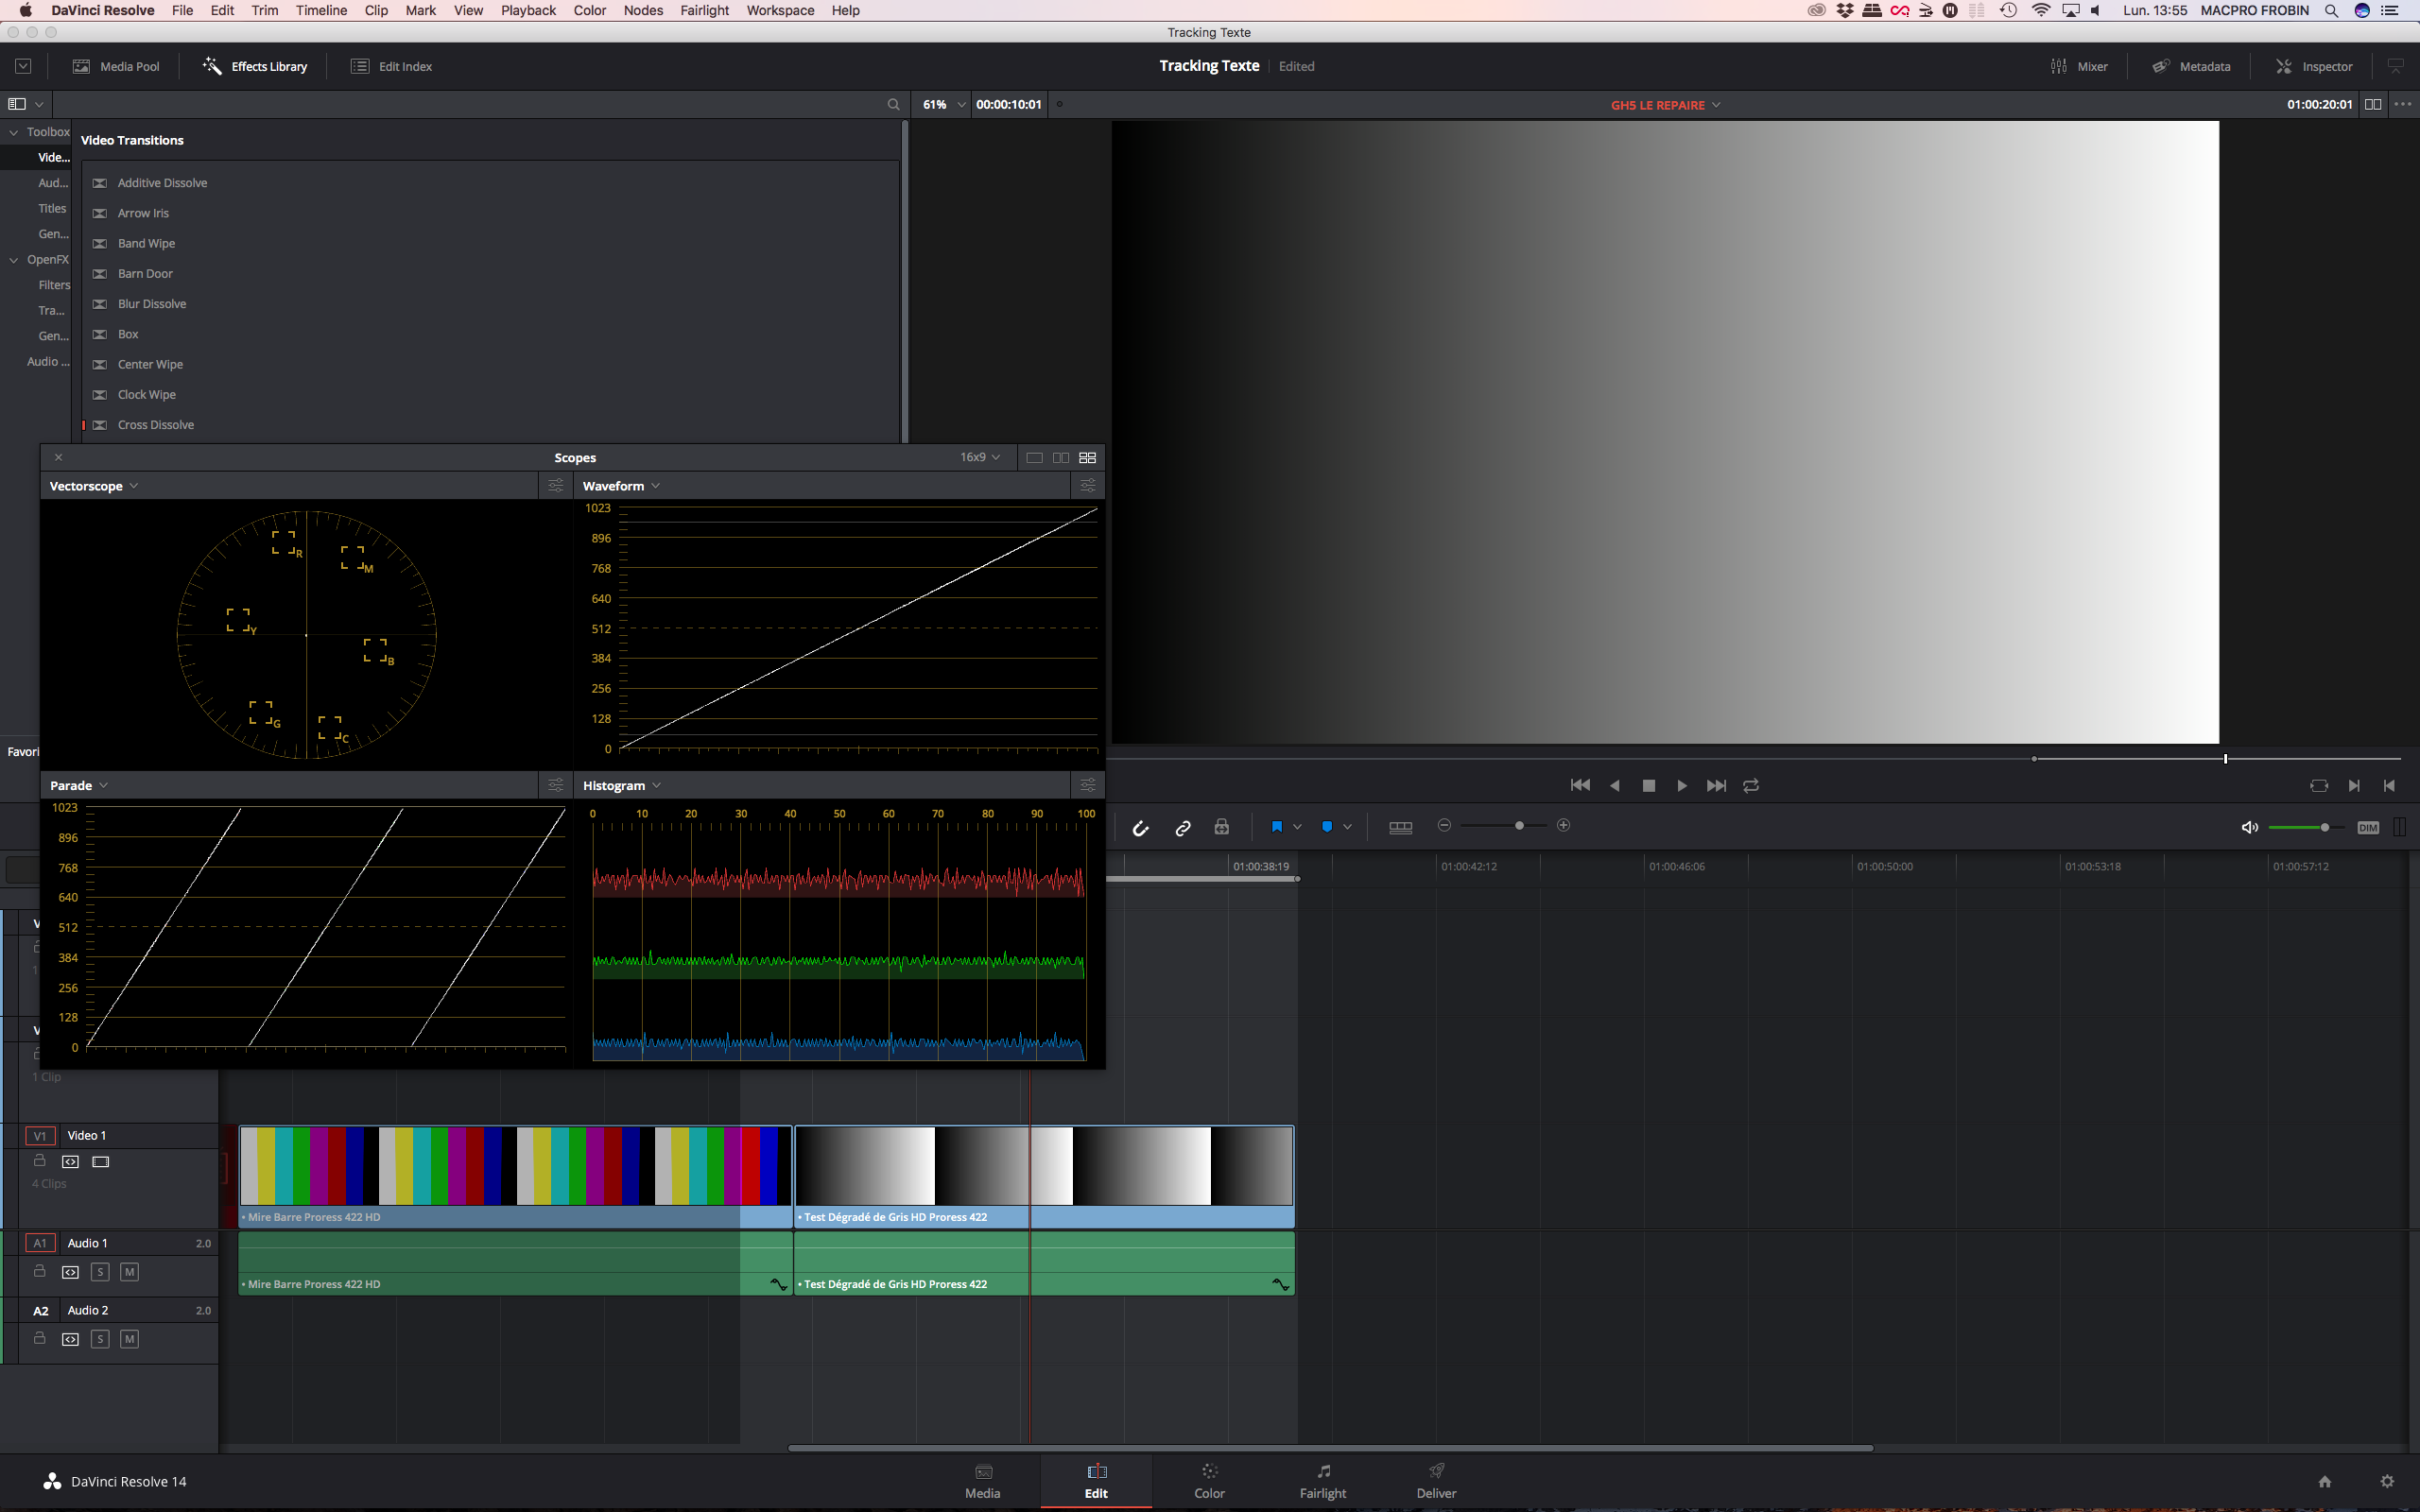 DaVinci Resolve 14.1 gestion des scopes dans la page Edit.